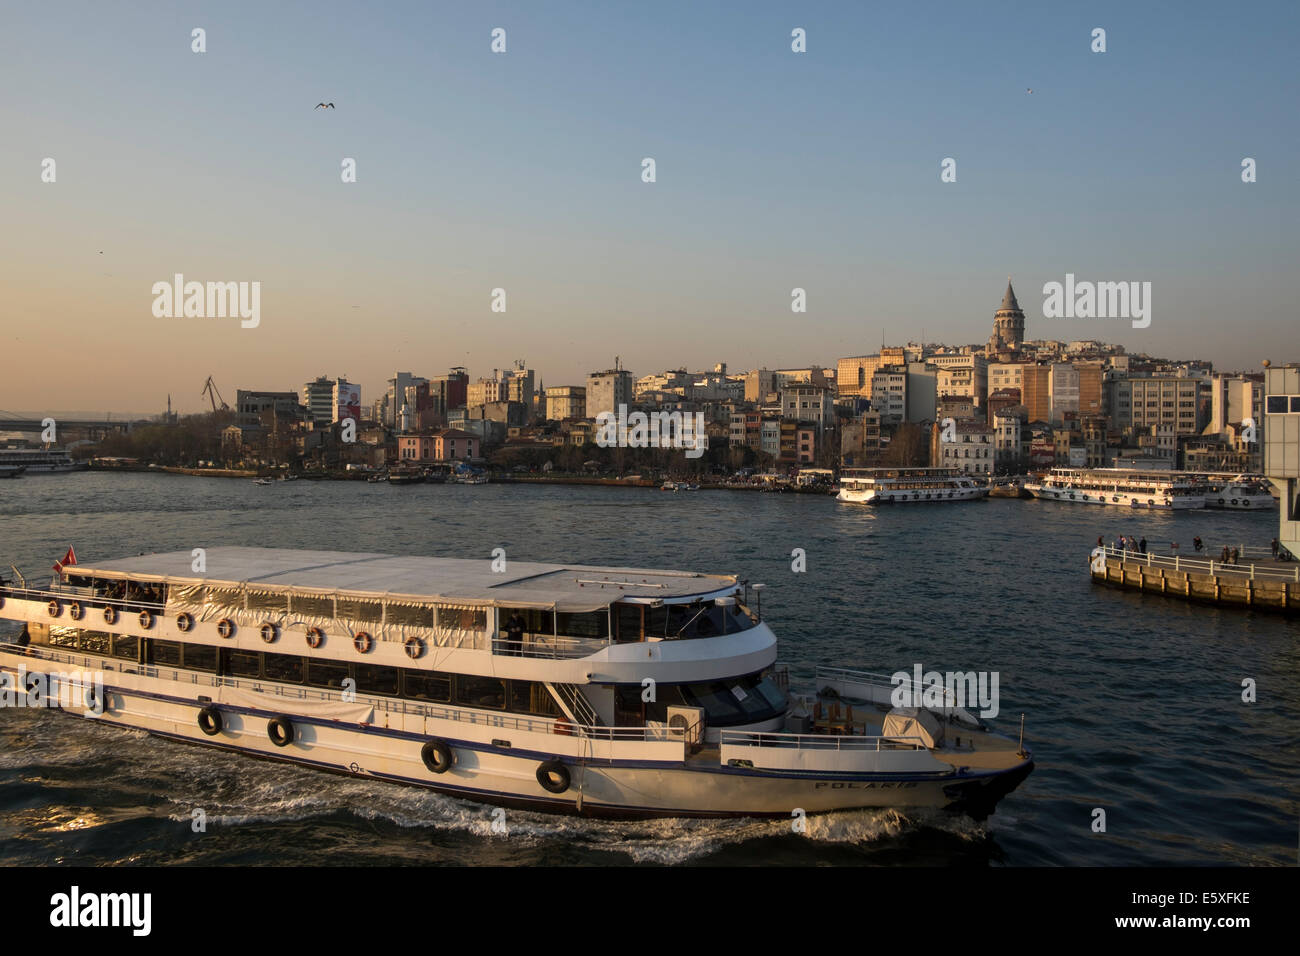 A passenger ship floating on the Golden Horn as the Galata Tower stands out in the skyline in Istanbul, Turkey on - Stock Image